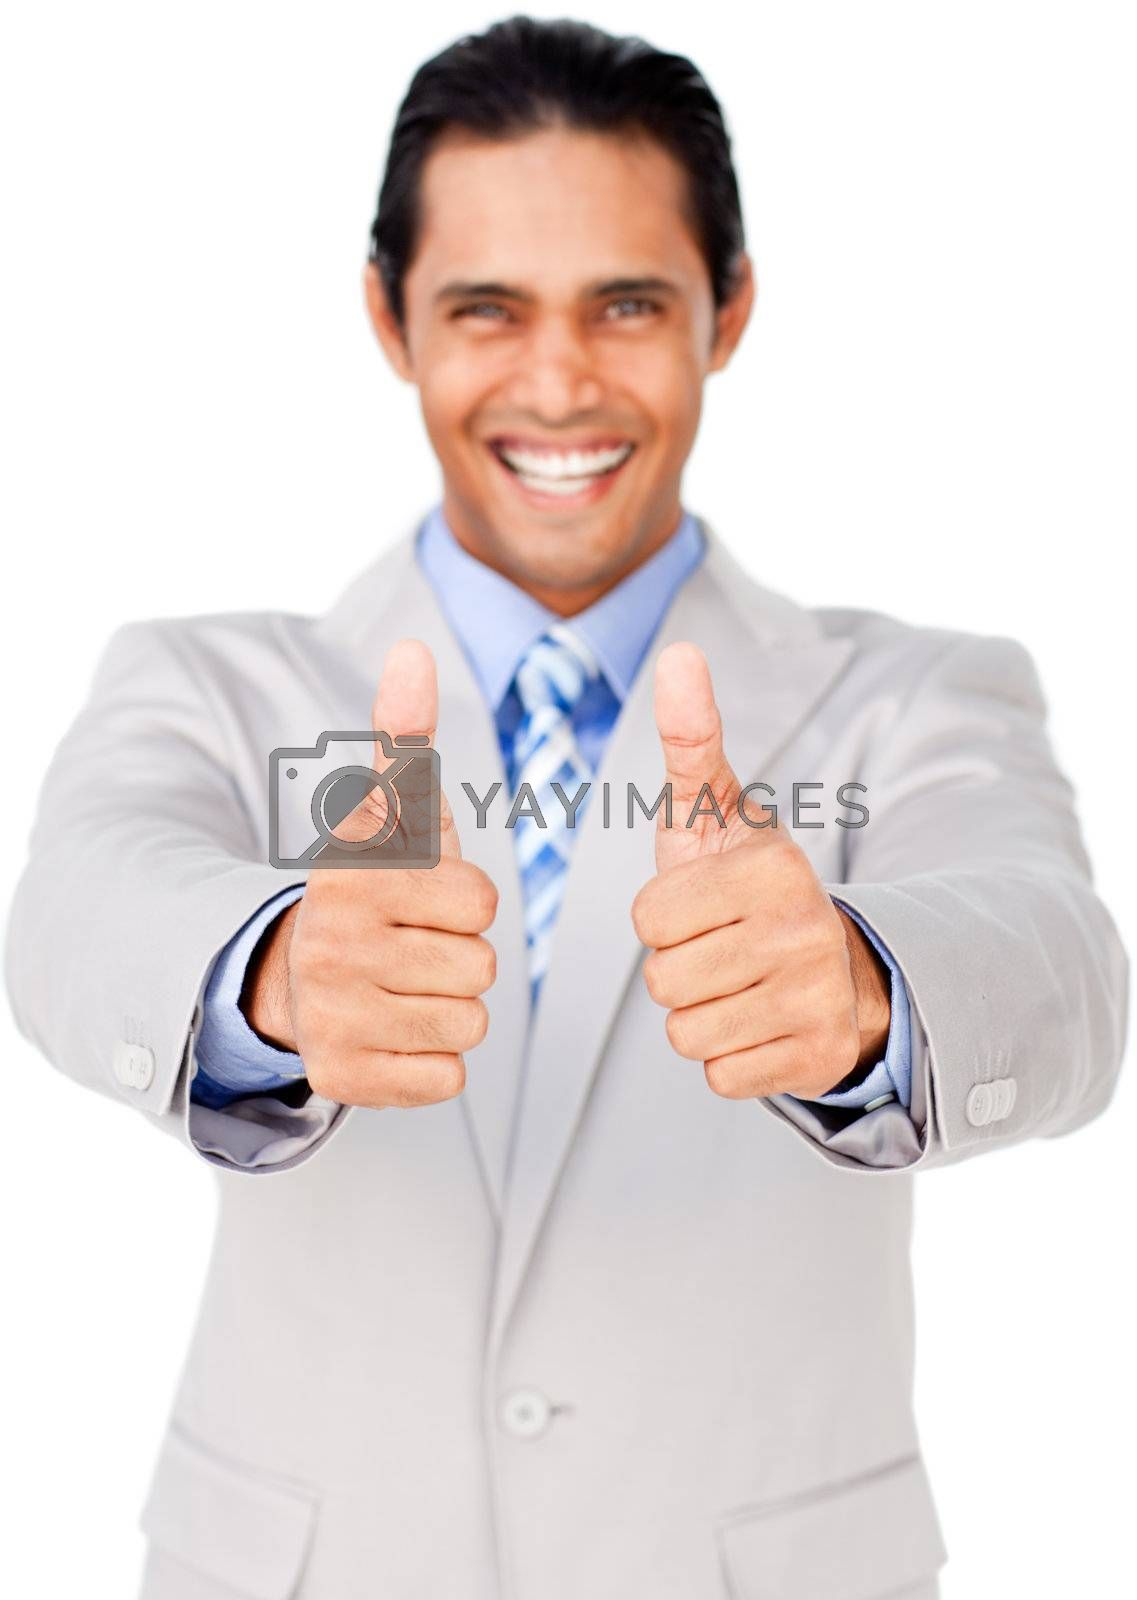 Ethnic businessman with thumbs up in celebration isolated on a white background